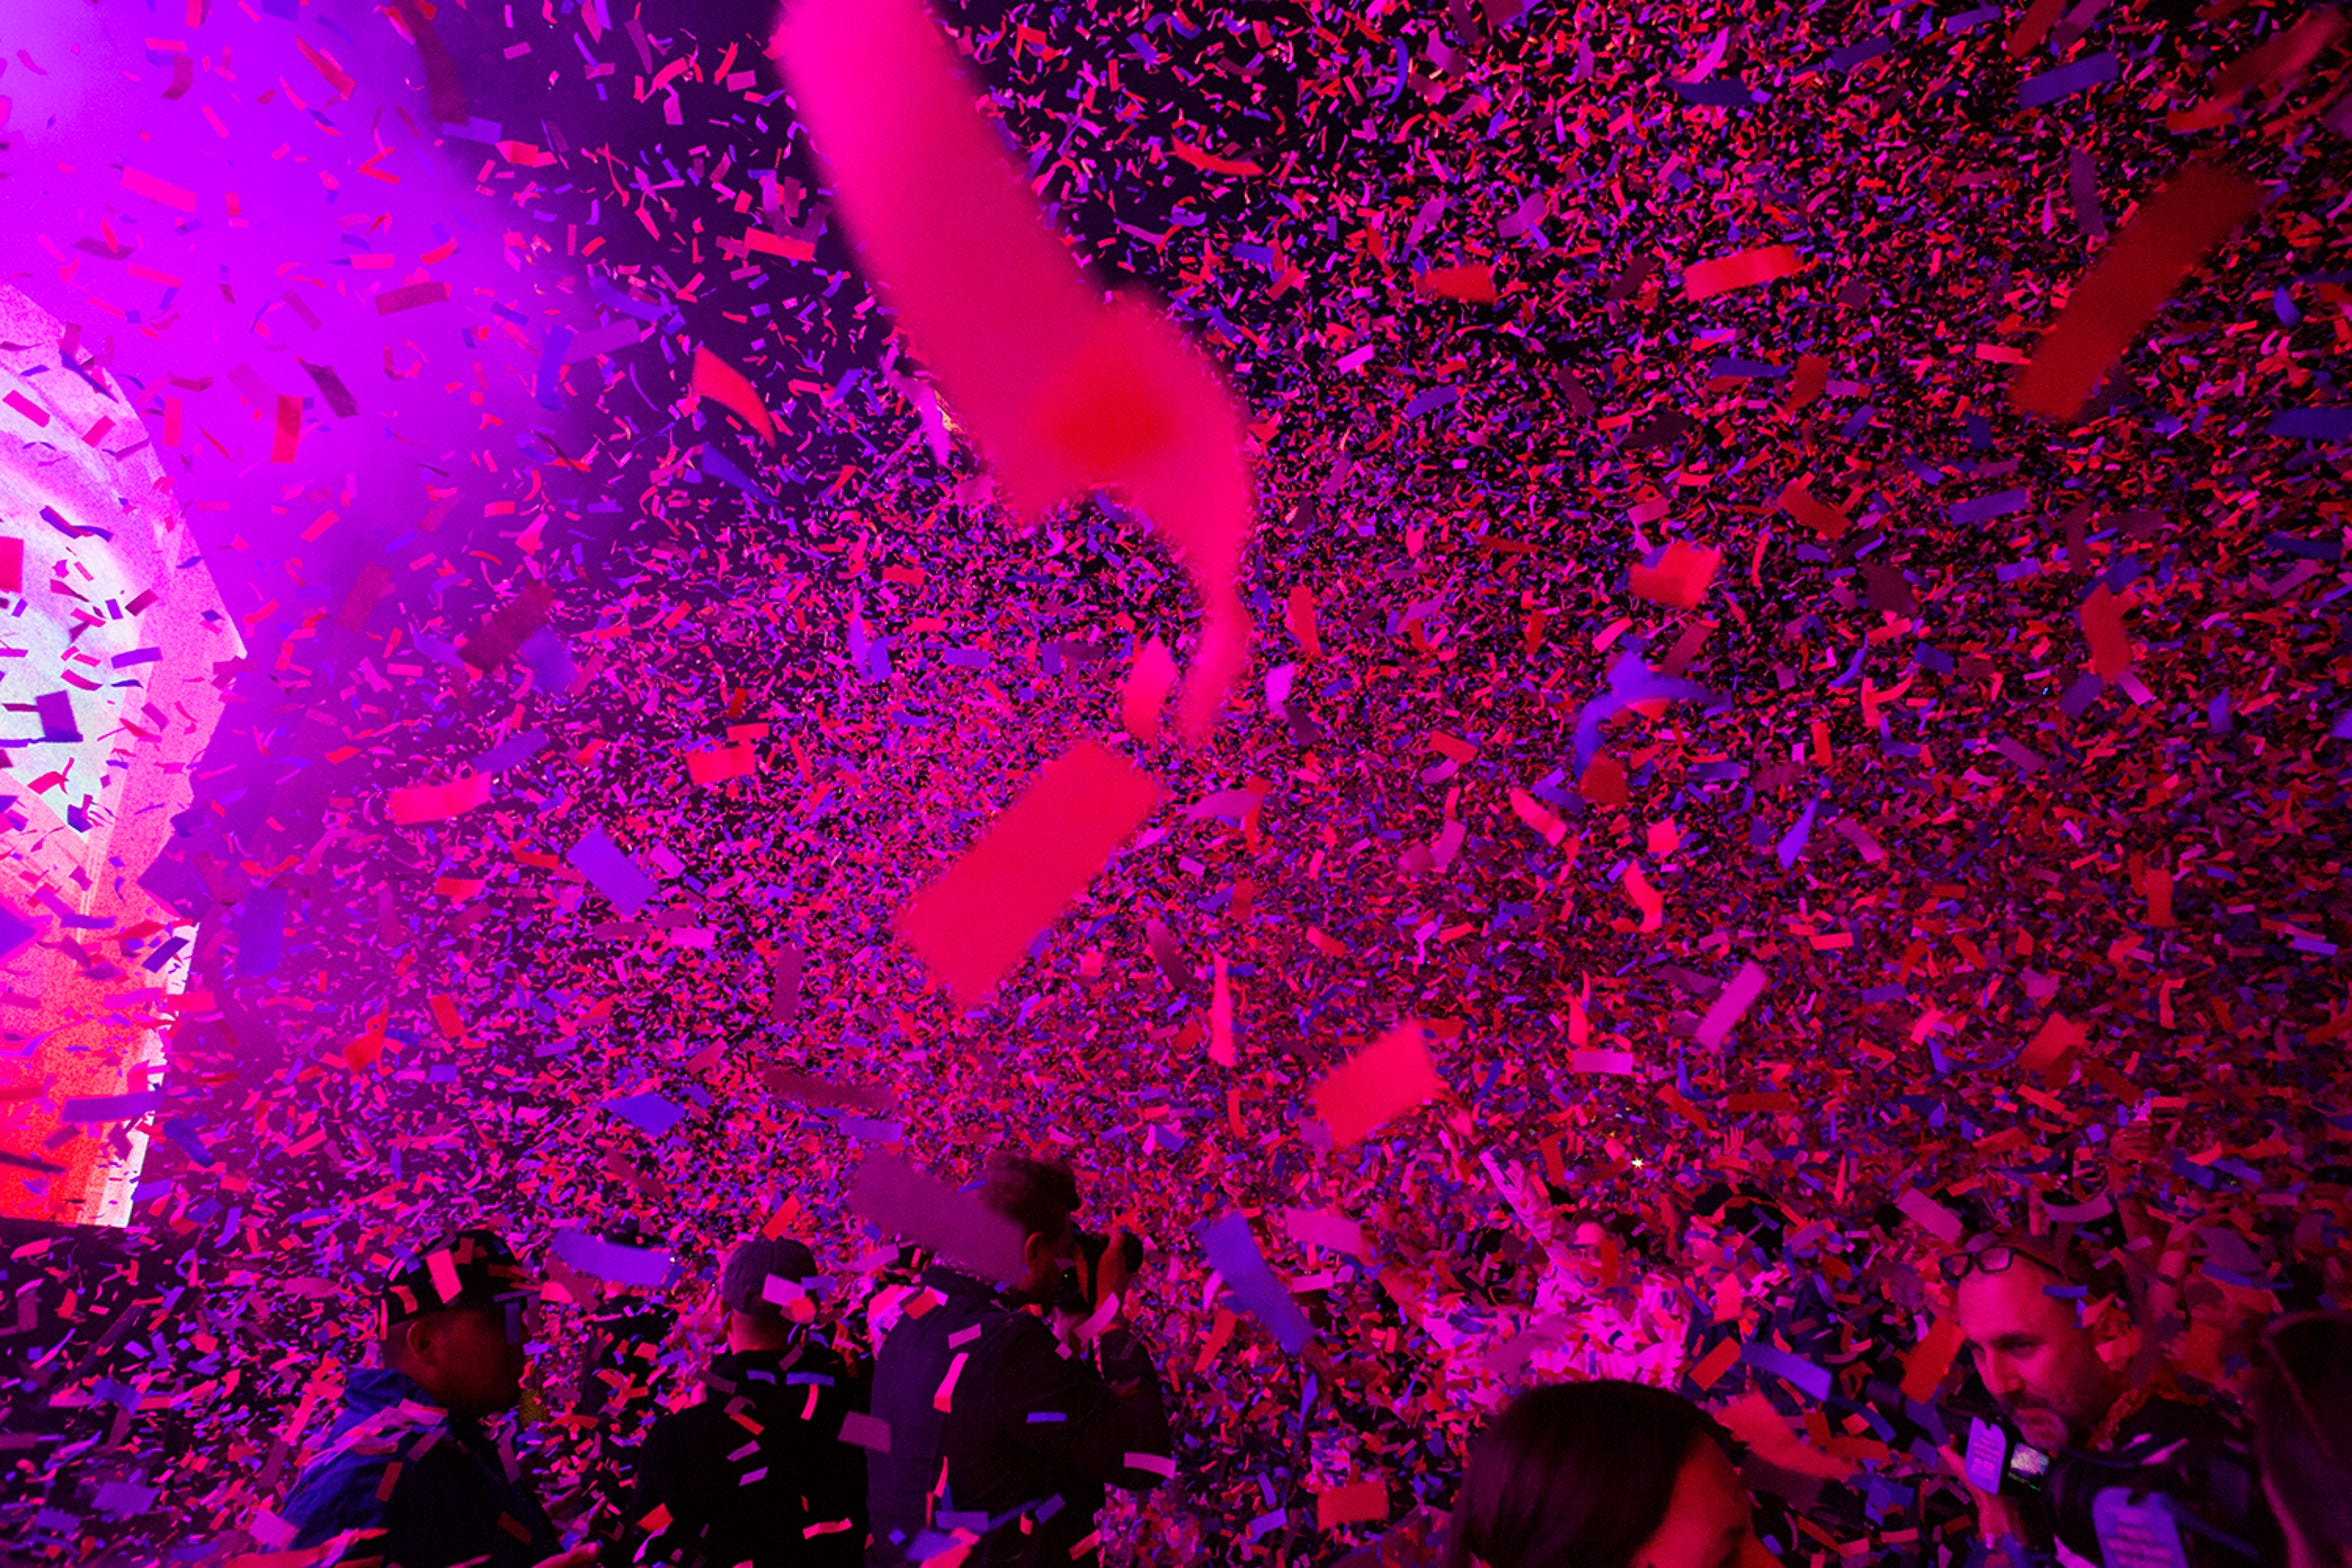 Enriqueta Magaña said her crew spent about three hours cleaning up confetti at the Coachella music festival.